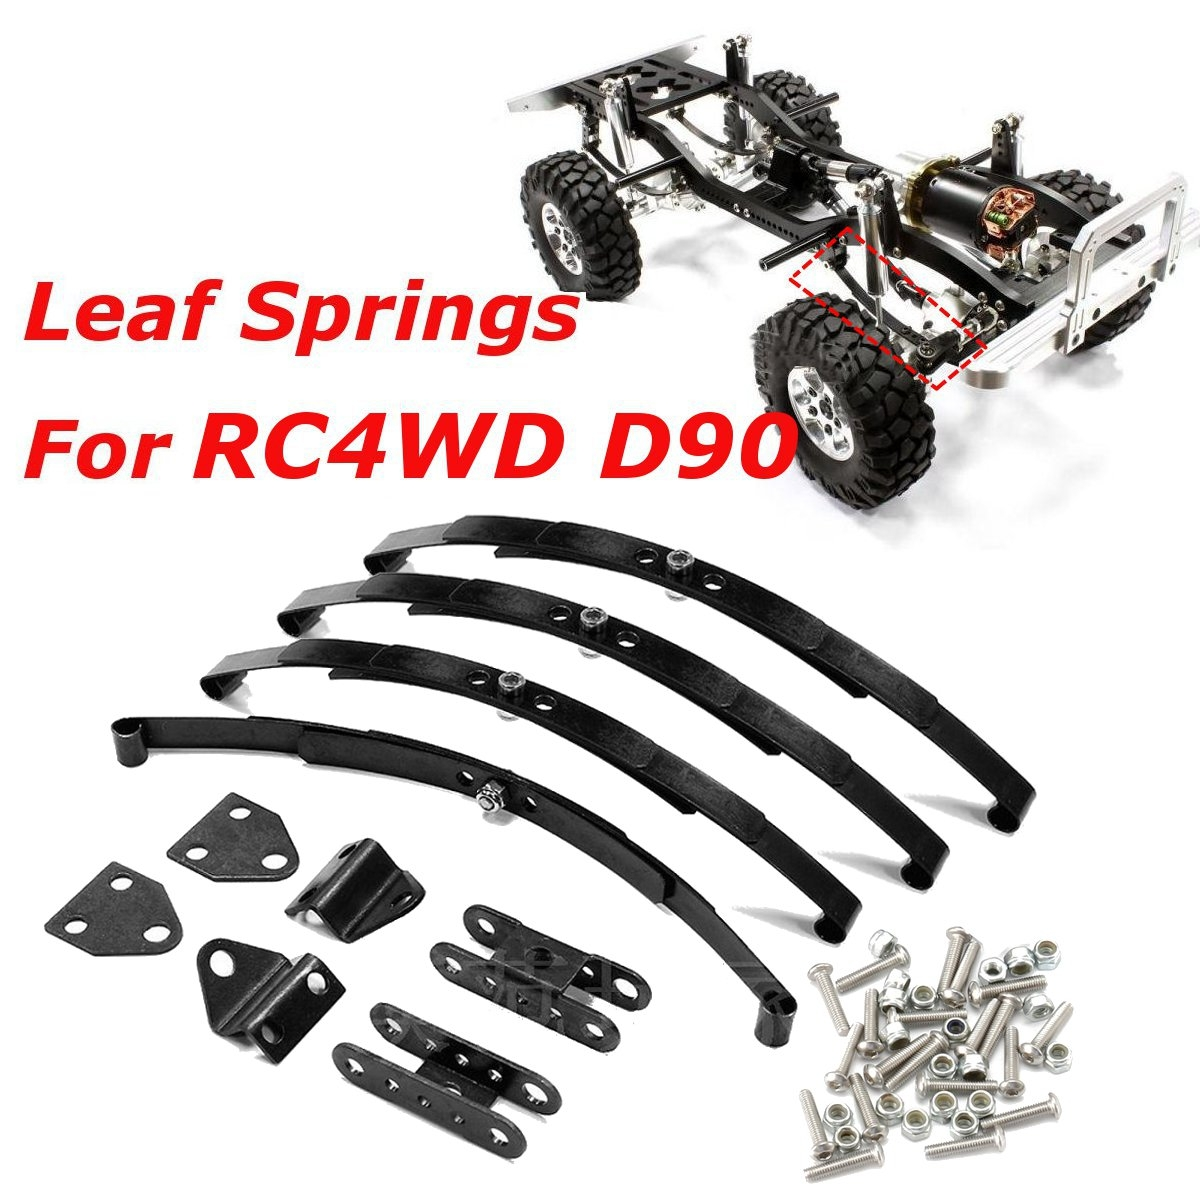 4pcs 1/10 Leaf Springs Set HighLift Chassis For 1/10 D90 RC Crawler Car Parts Black